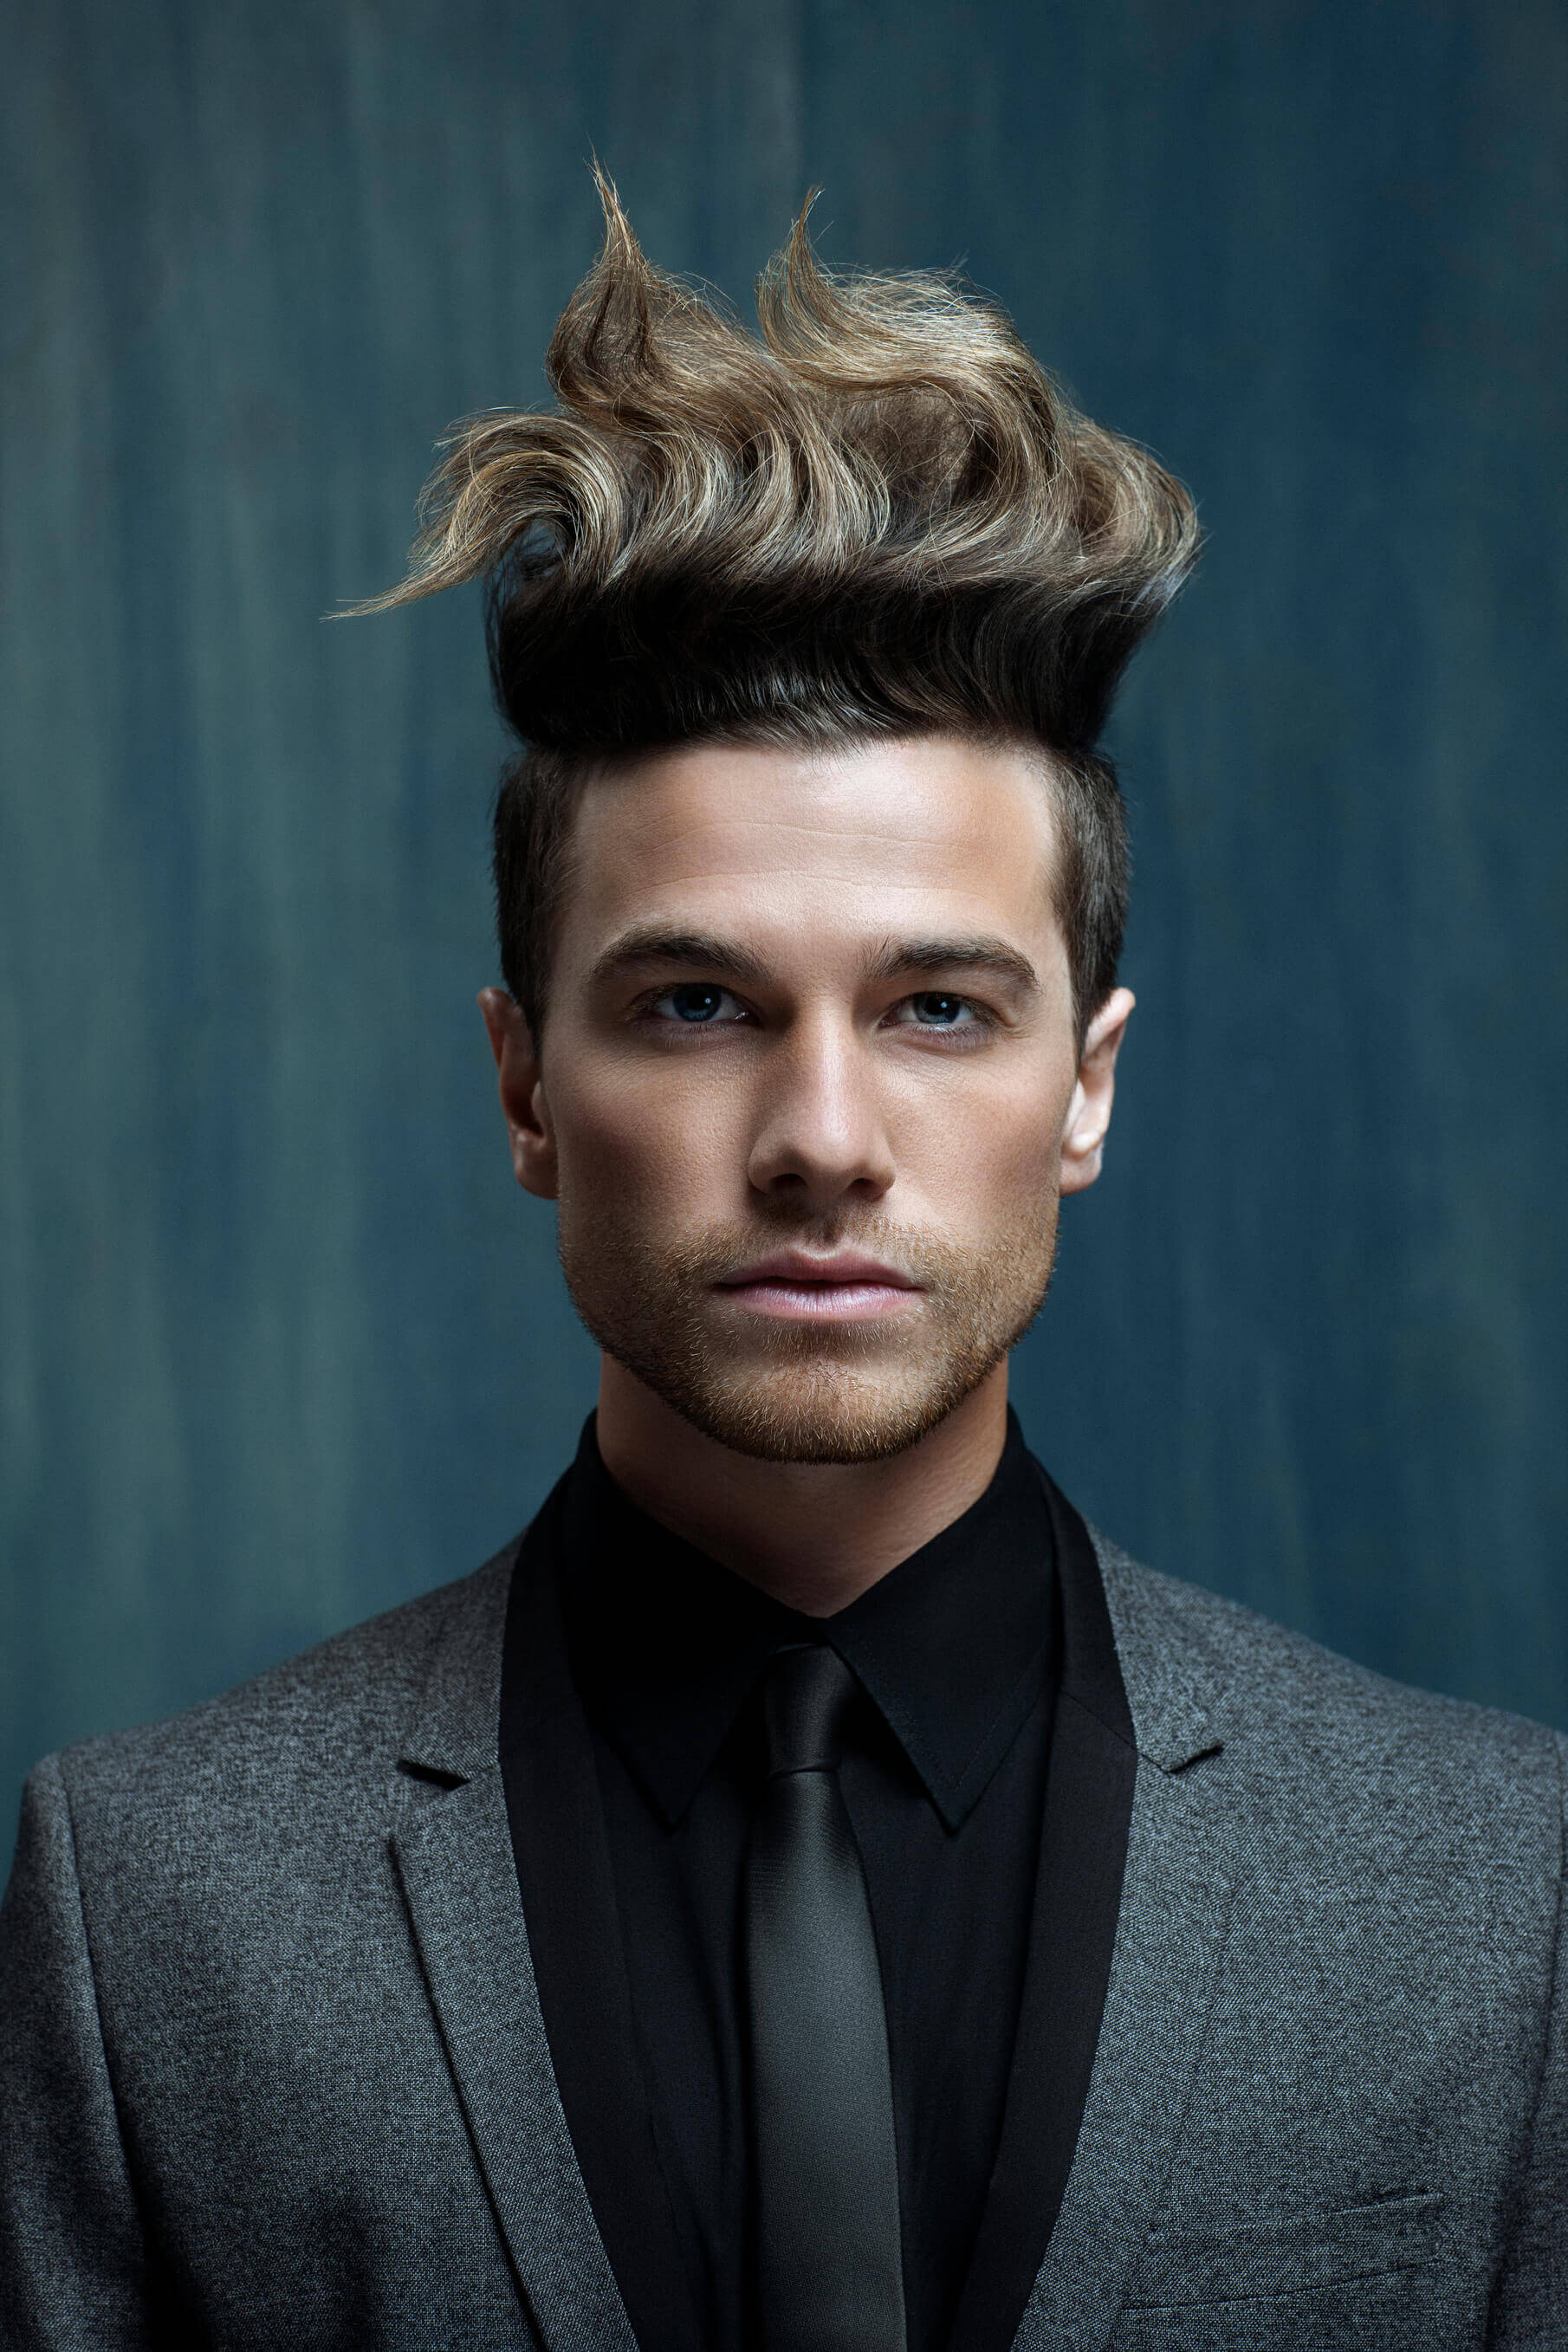 Wavy Quiff for Men How to Style this NonBoring Holiday Hairstyle